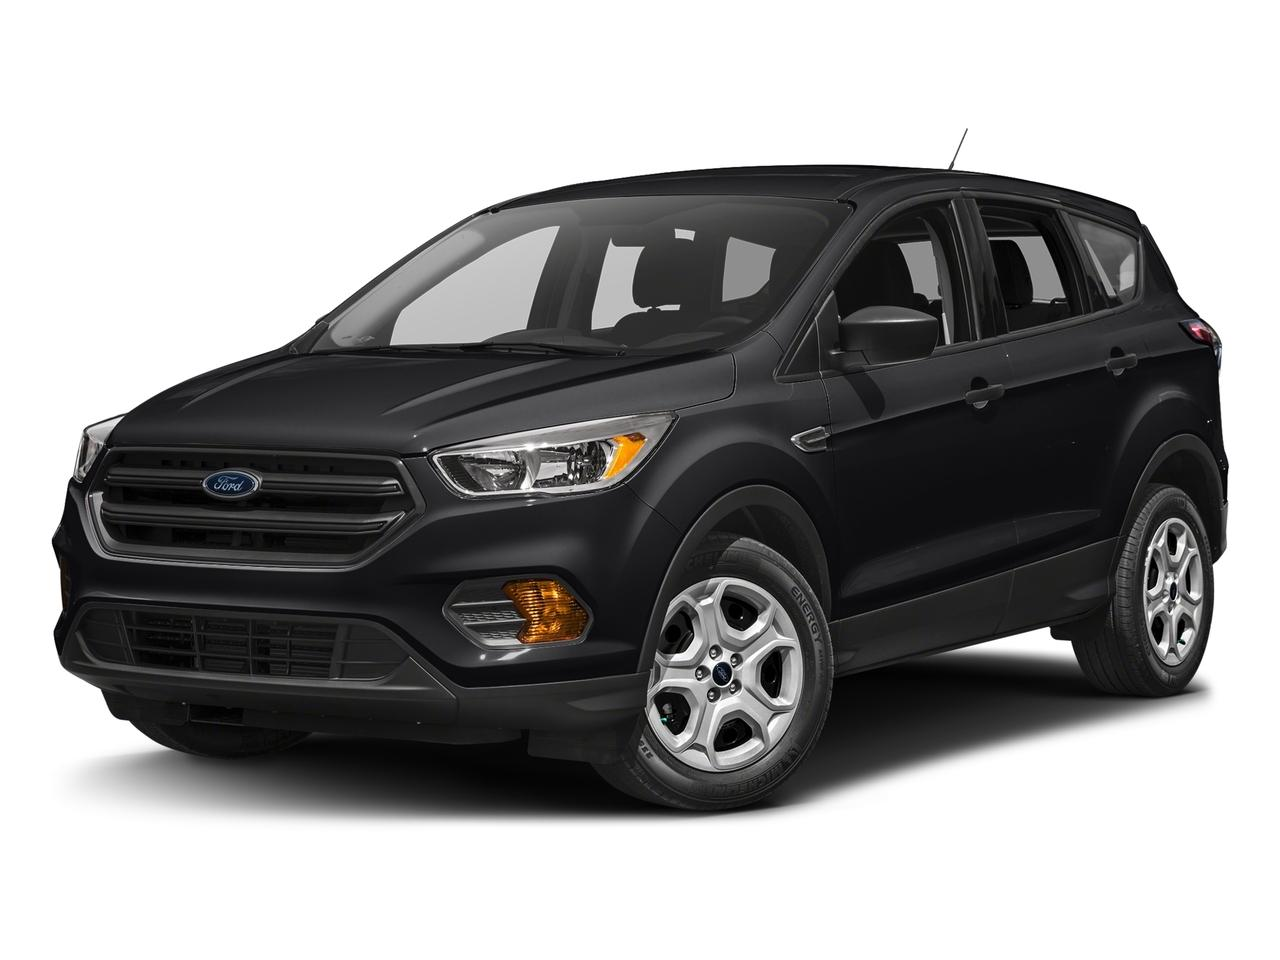 2017 Ford Escape Vehicle Photo in King George, VA 22485